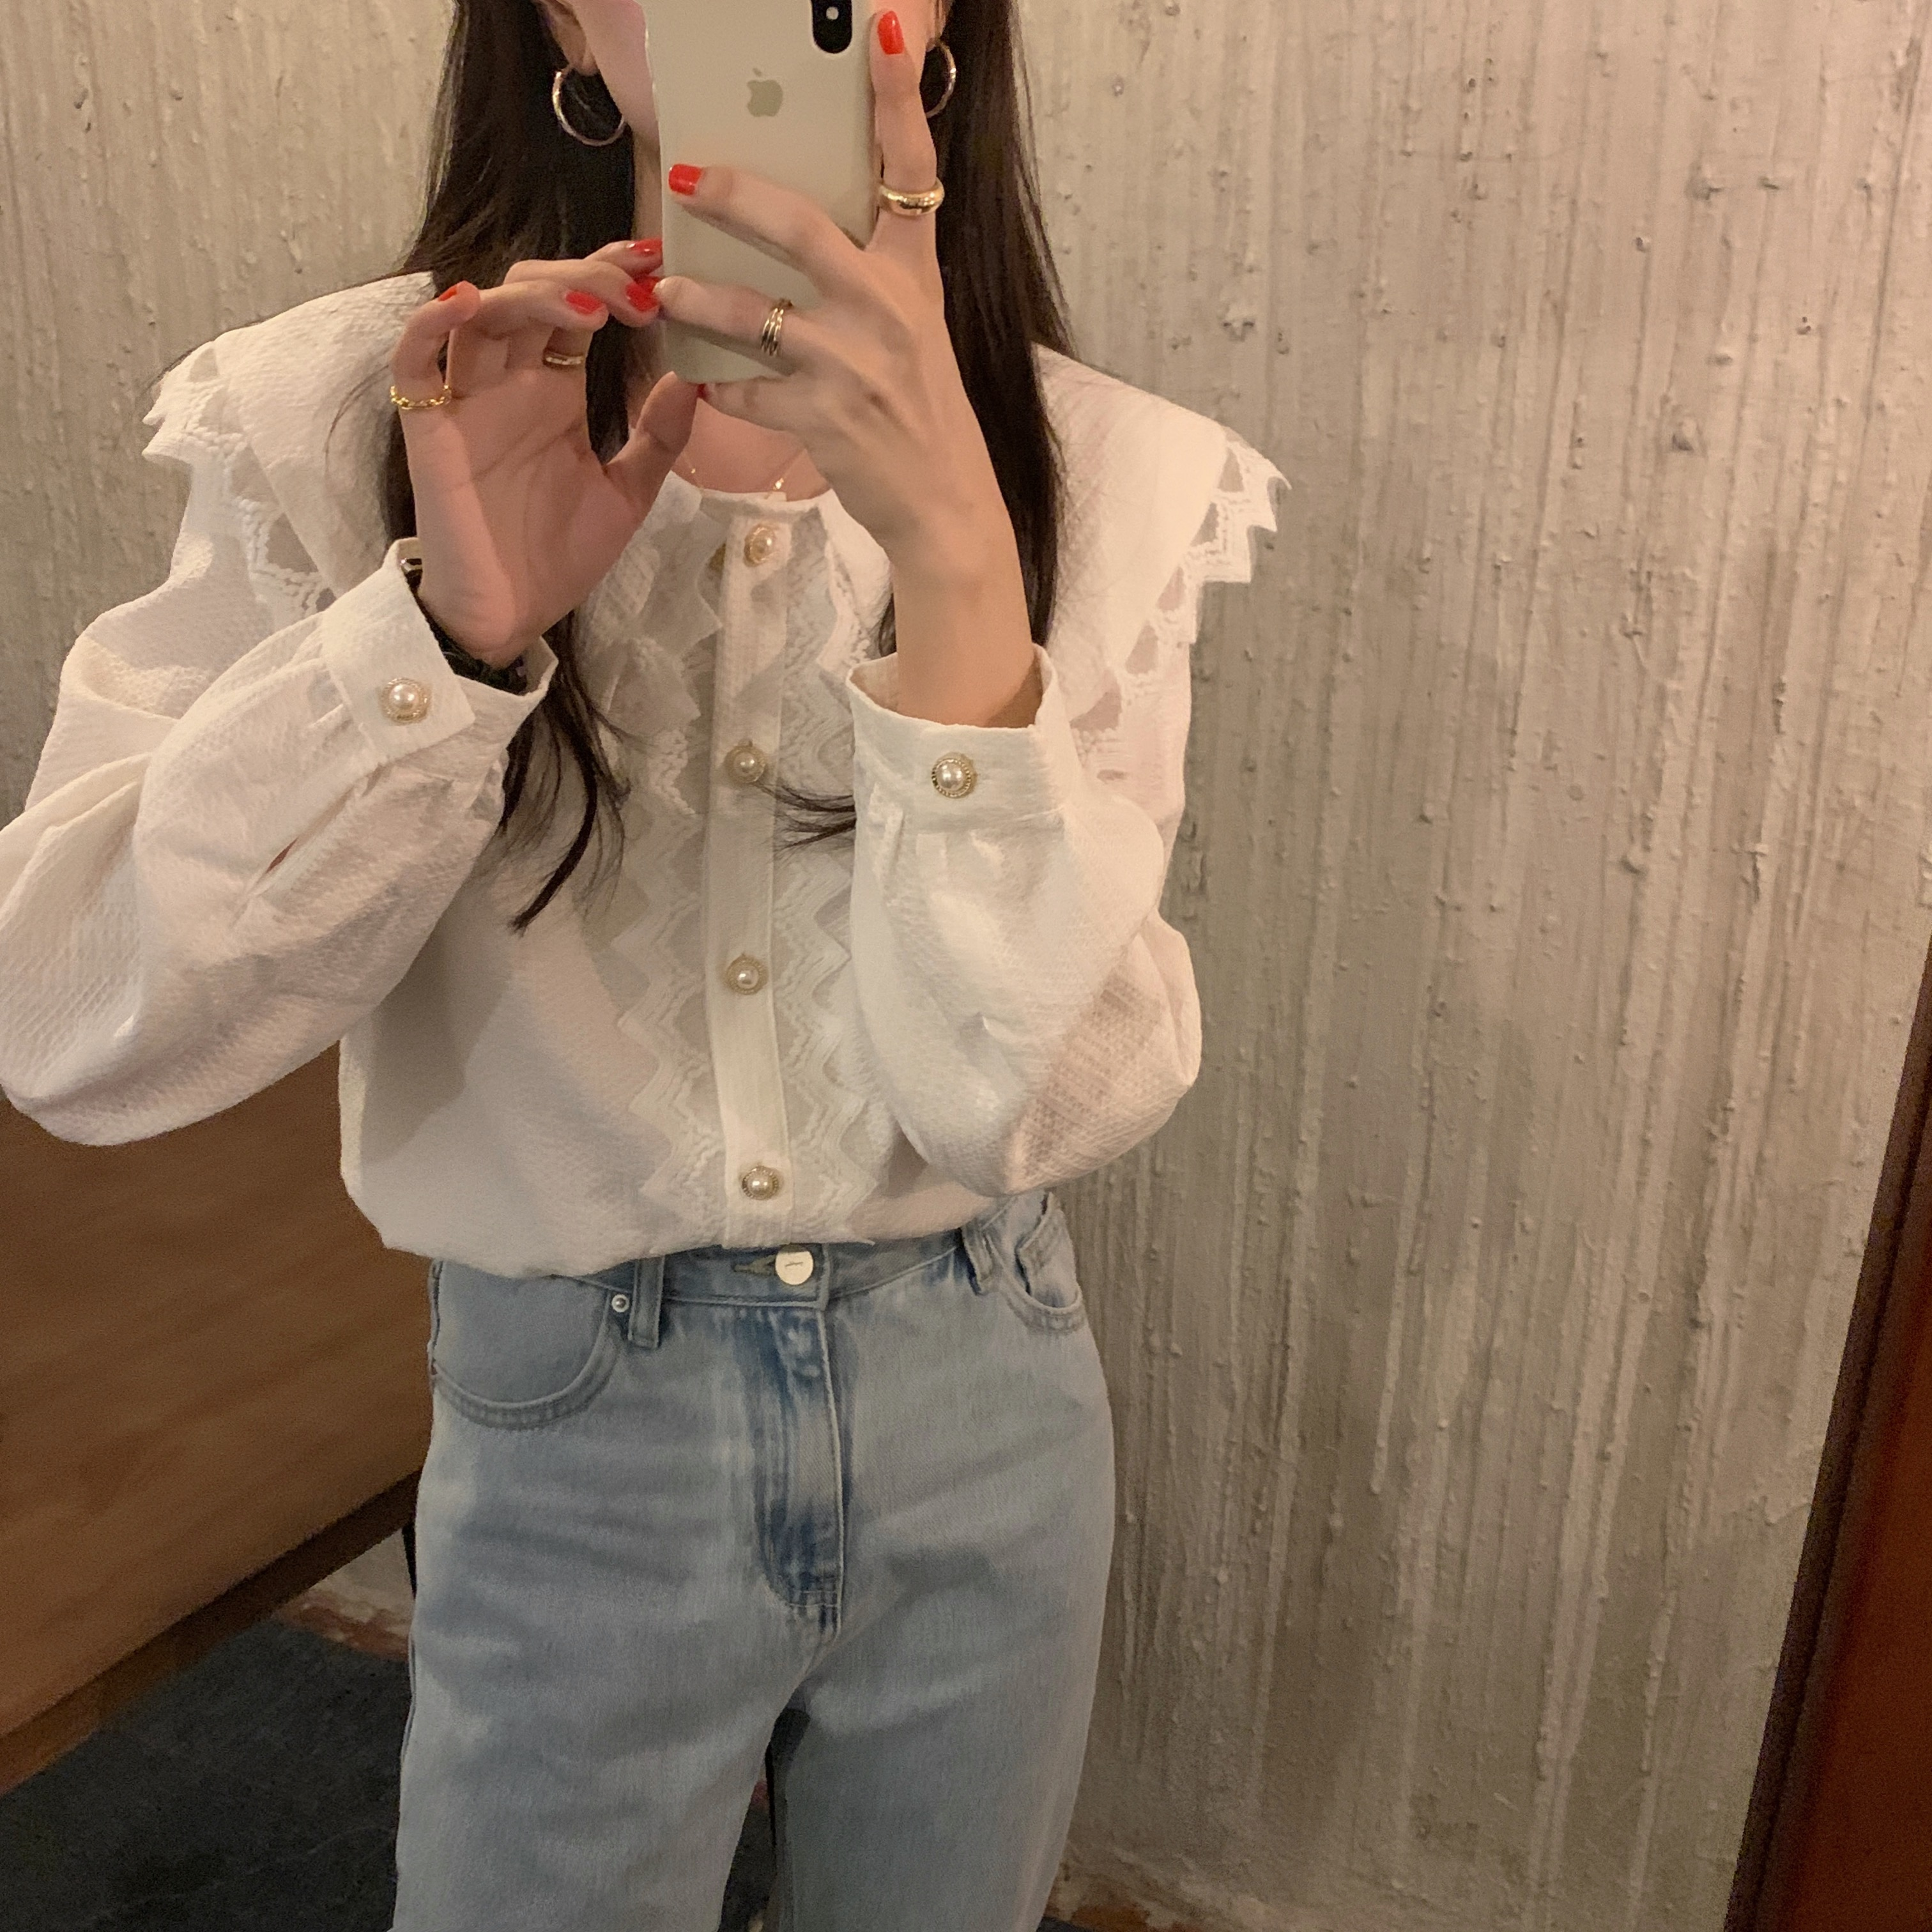 H47f84a5c26824fb8b81a71e3813e9be7s - Spring / Autumn Big Lapel Collar Long Sleeves Lace Buttons Solid Blouse